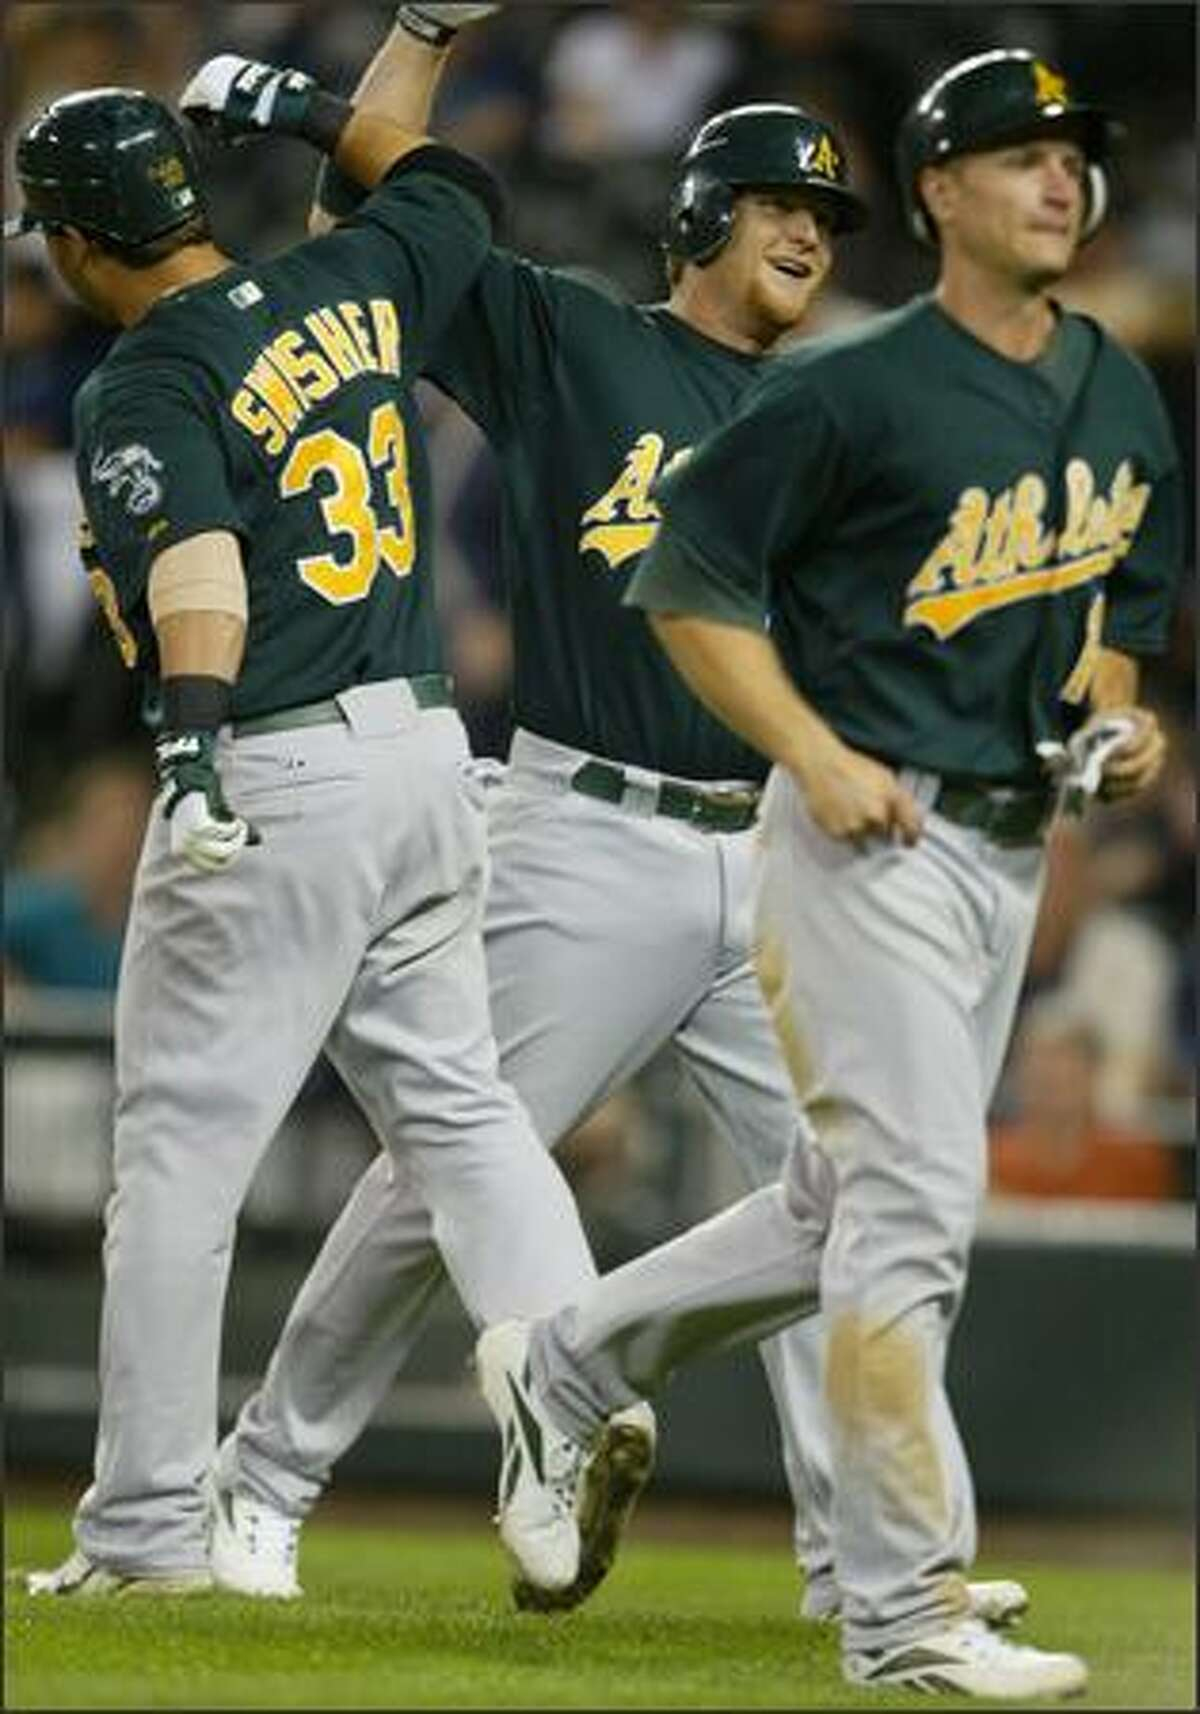 Oakland Athletics Dan Johnson, center, is greeted at home plate by teammate Nick Swisher after a grand slam during the 8th inning at Safeco Field.